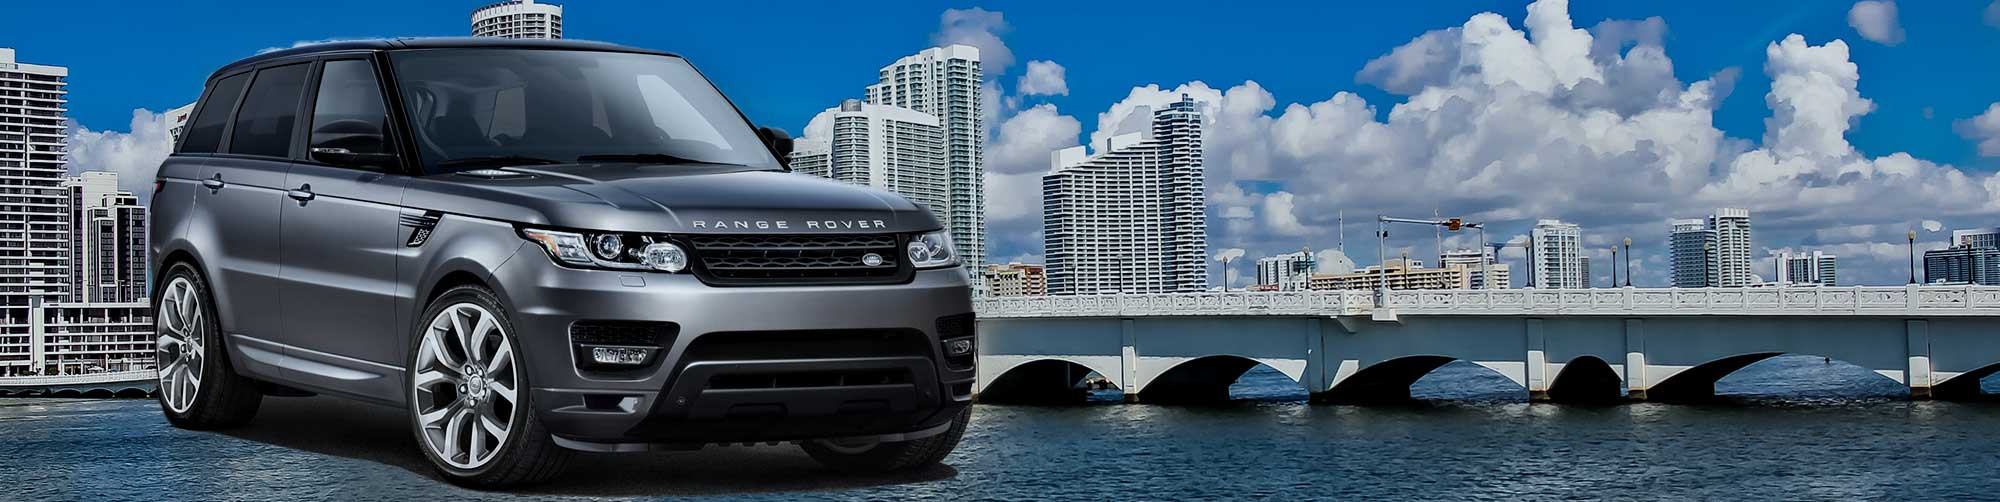 Luxury Cars Rentals Miami Discount Luxury And Exotic Car